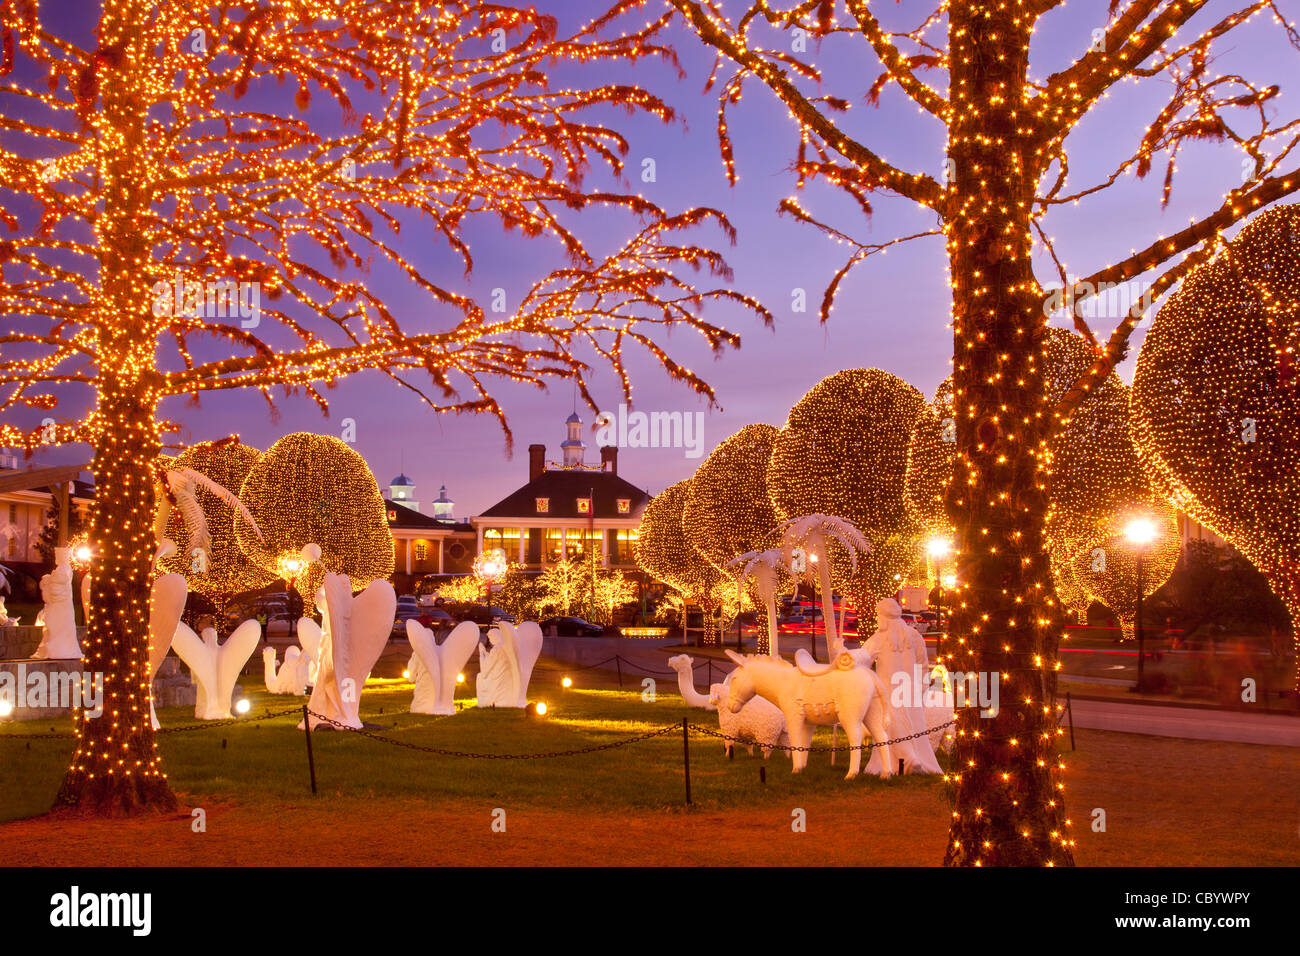 Christmas Decorations And Lights At Opryland Hotel